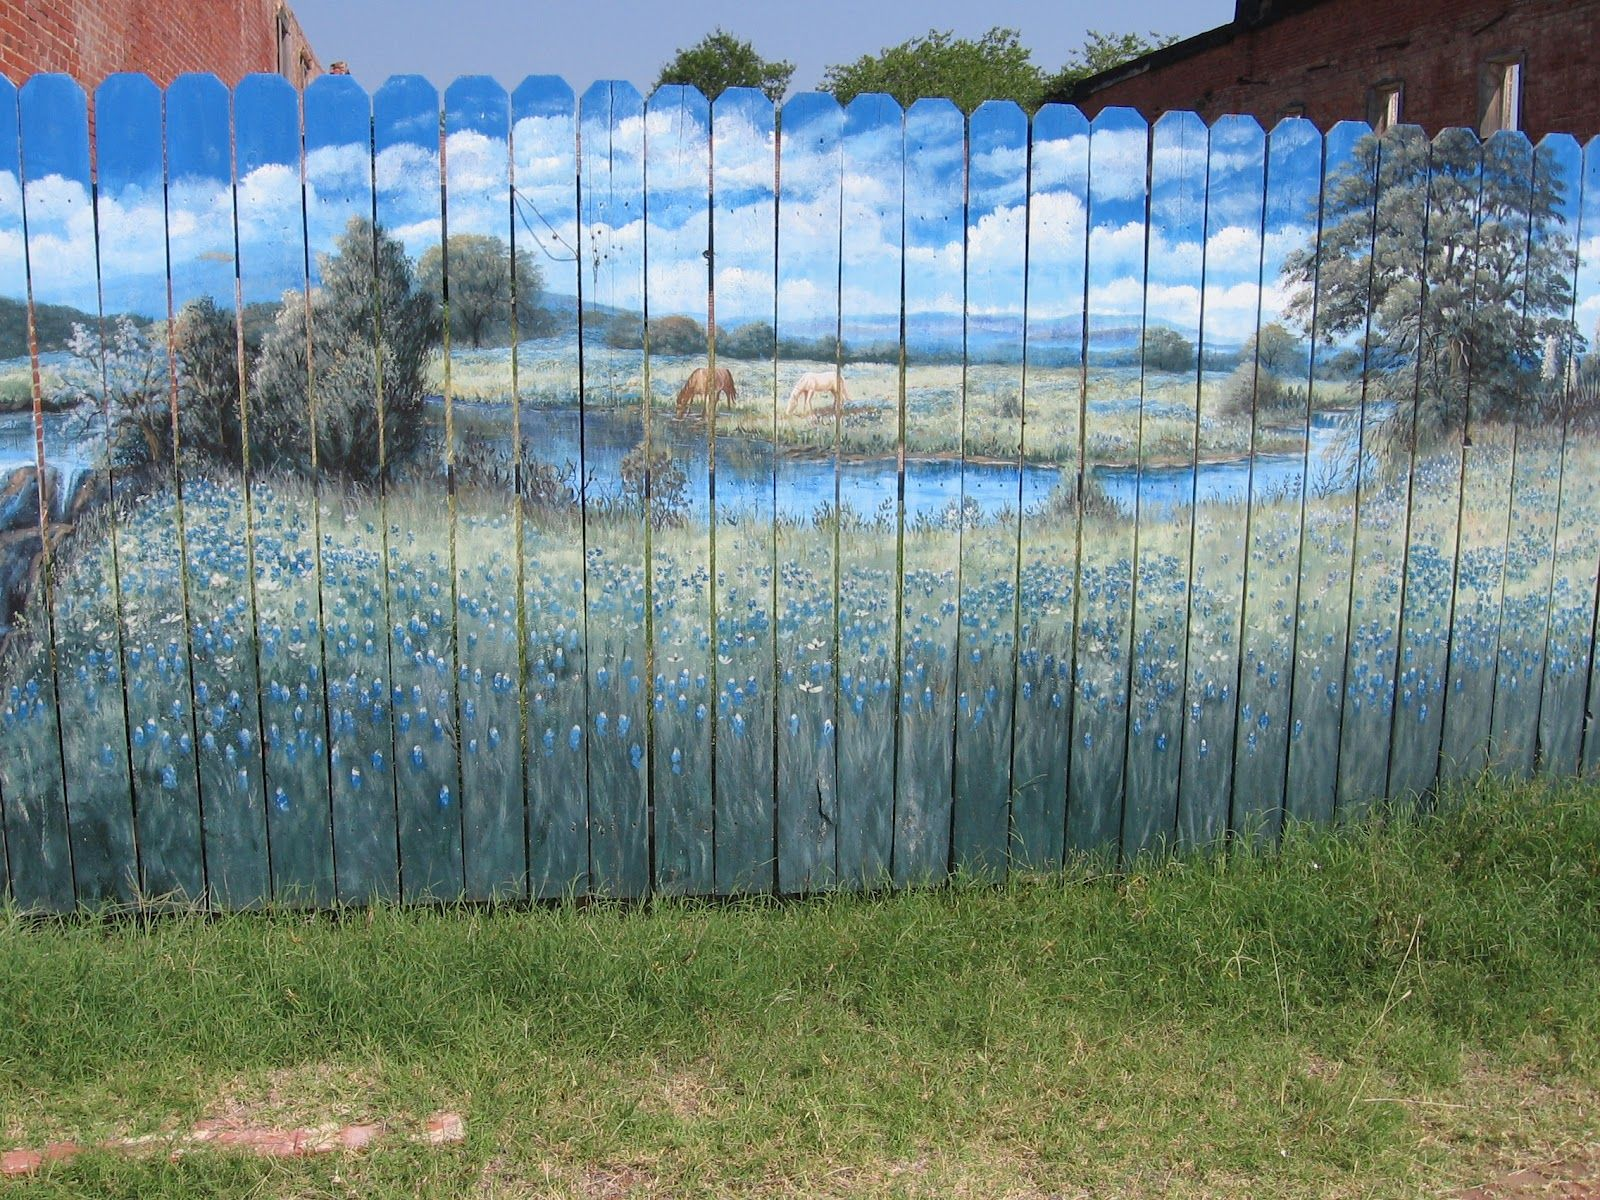 10 ways to make your fence beautiful backyard cap and decorating